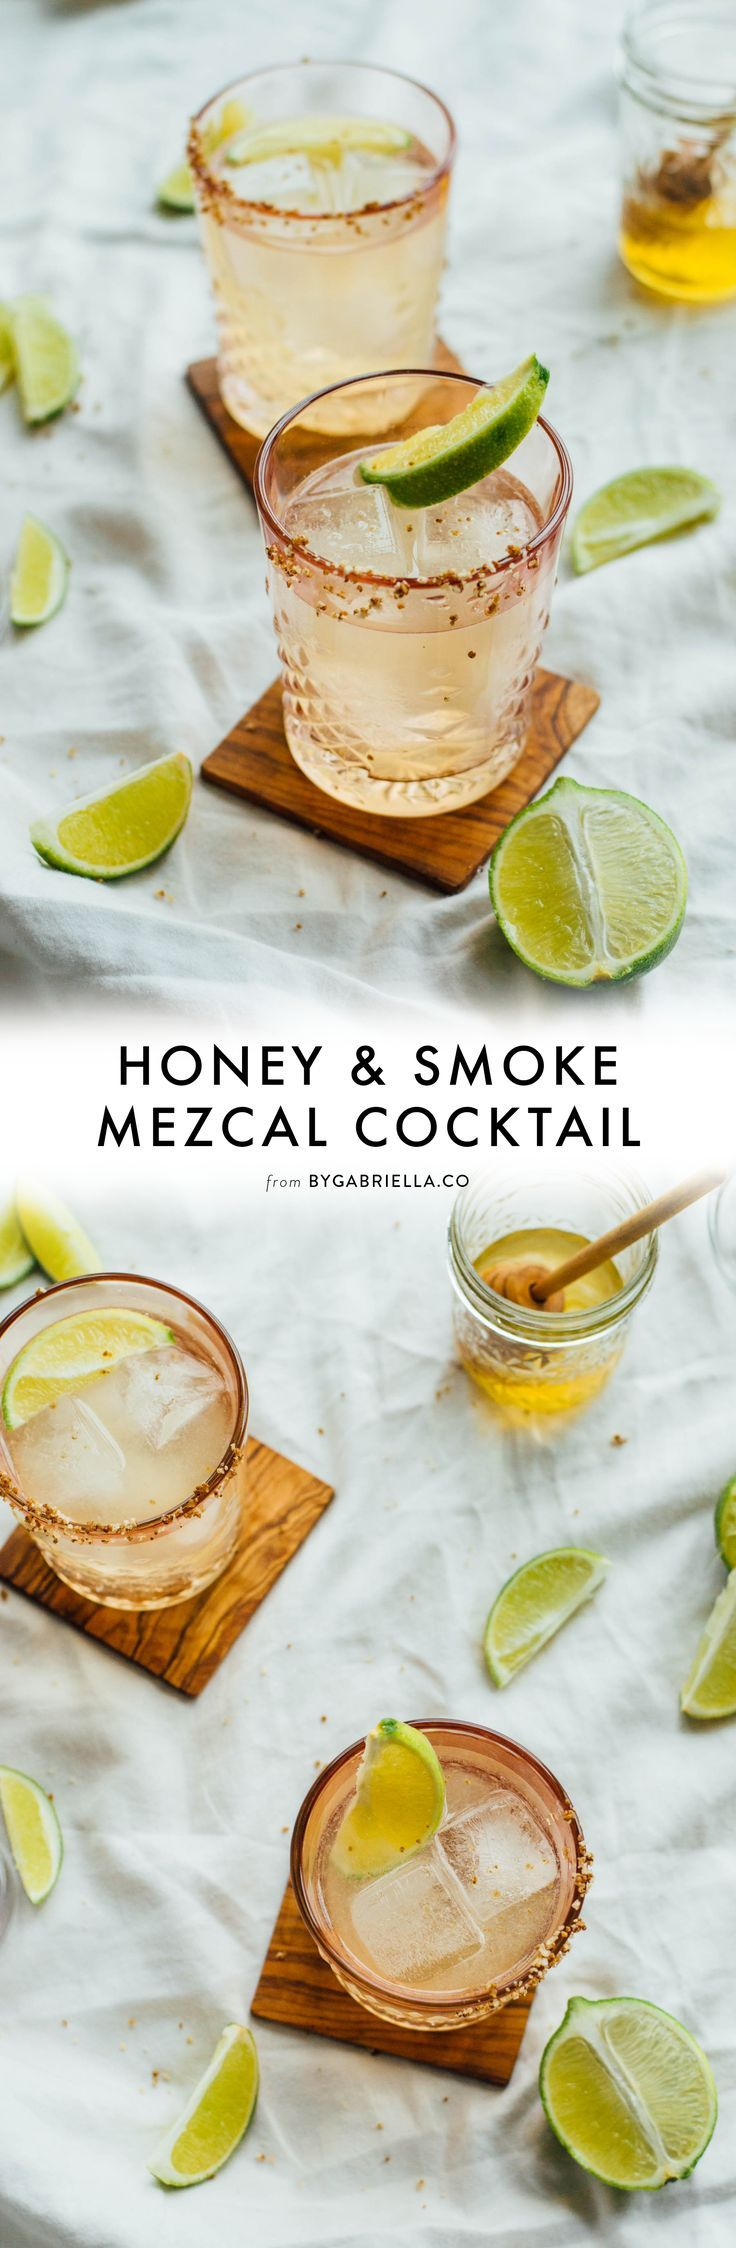 Honey & Smoke Cocktail recipe: An easy mezcal cocktail with just four ingredients! Here's how to make your own | http://bygabriella.co